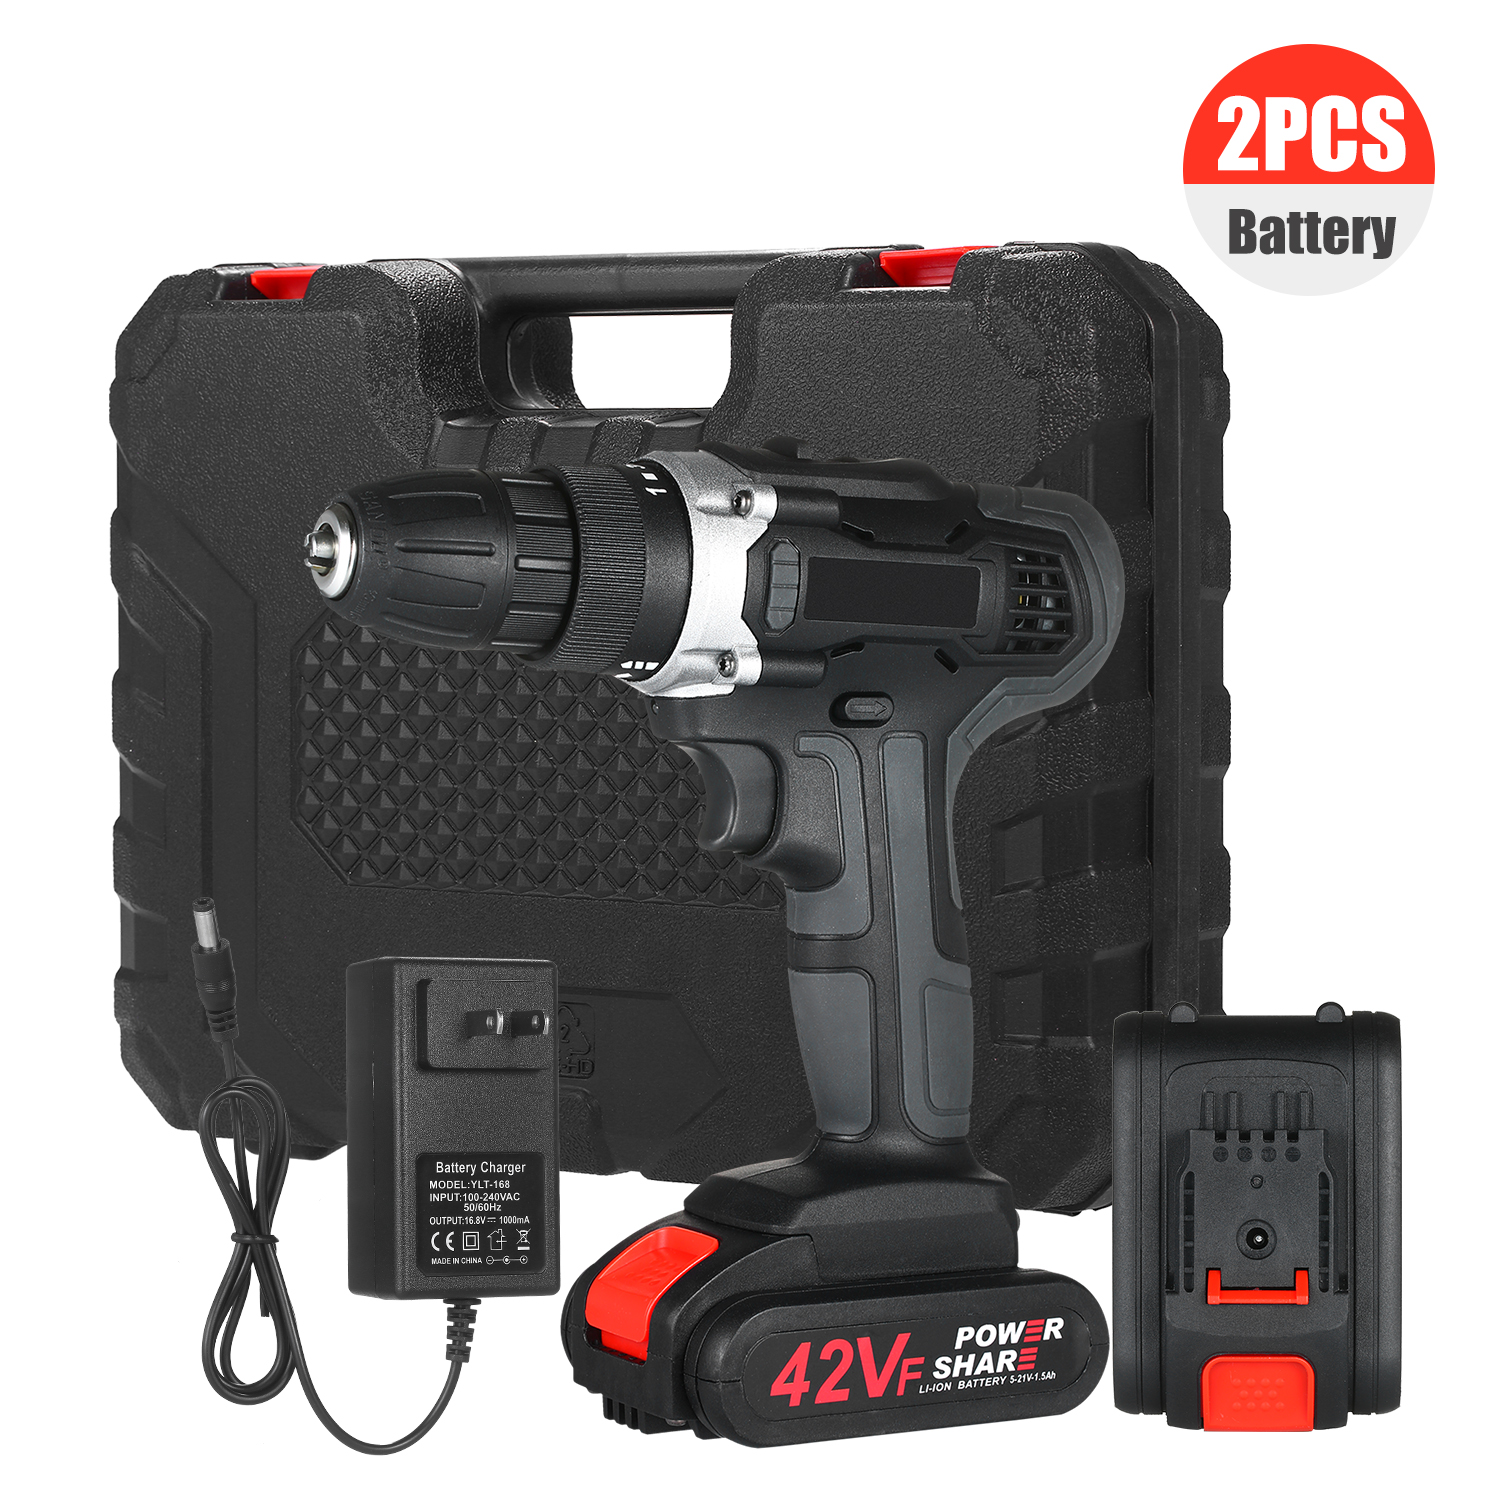 Cordless Drill Dirve Kit 2 Speed Brushless Cordless Power Drill drill electrics Wireless drill with Batteries Fast Charger